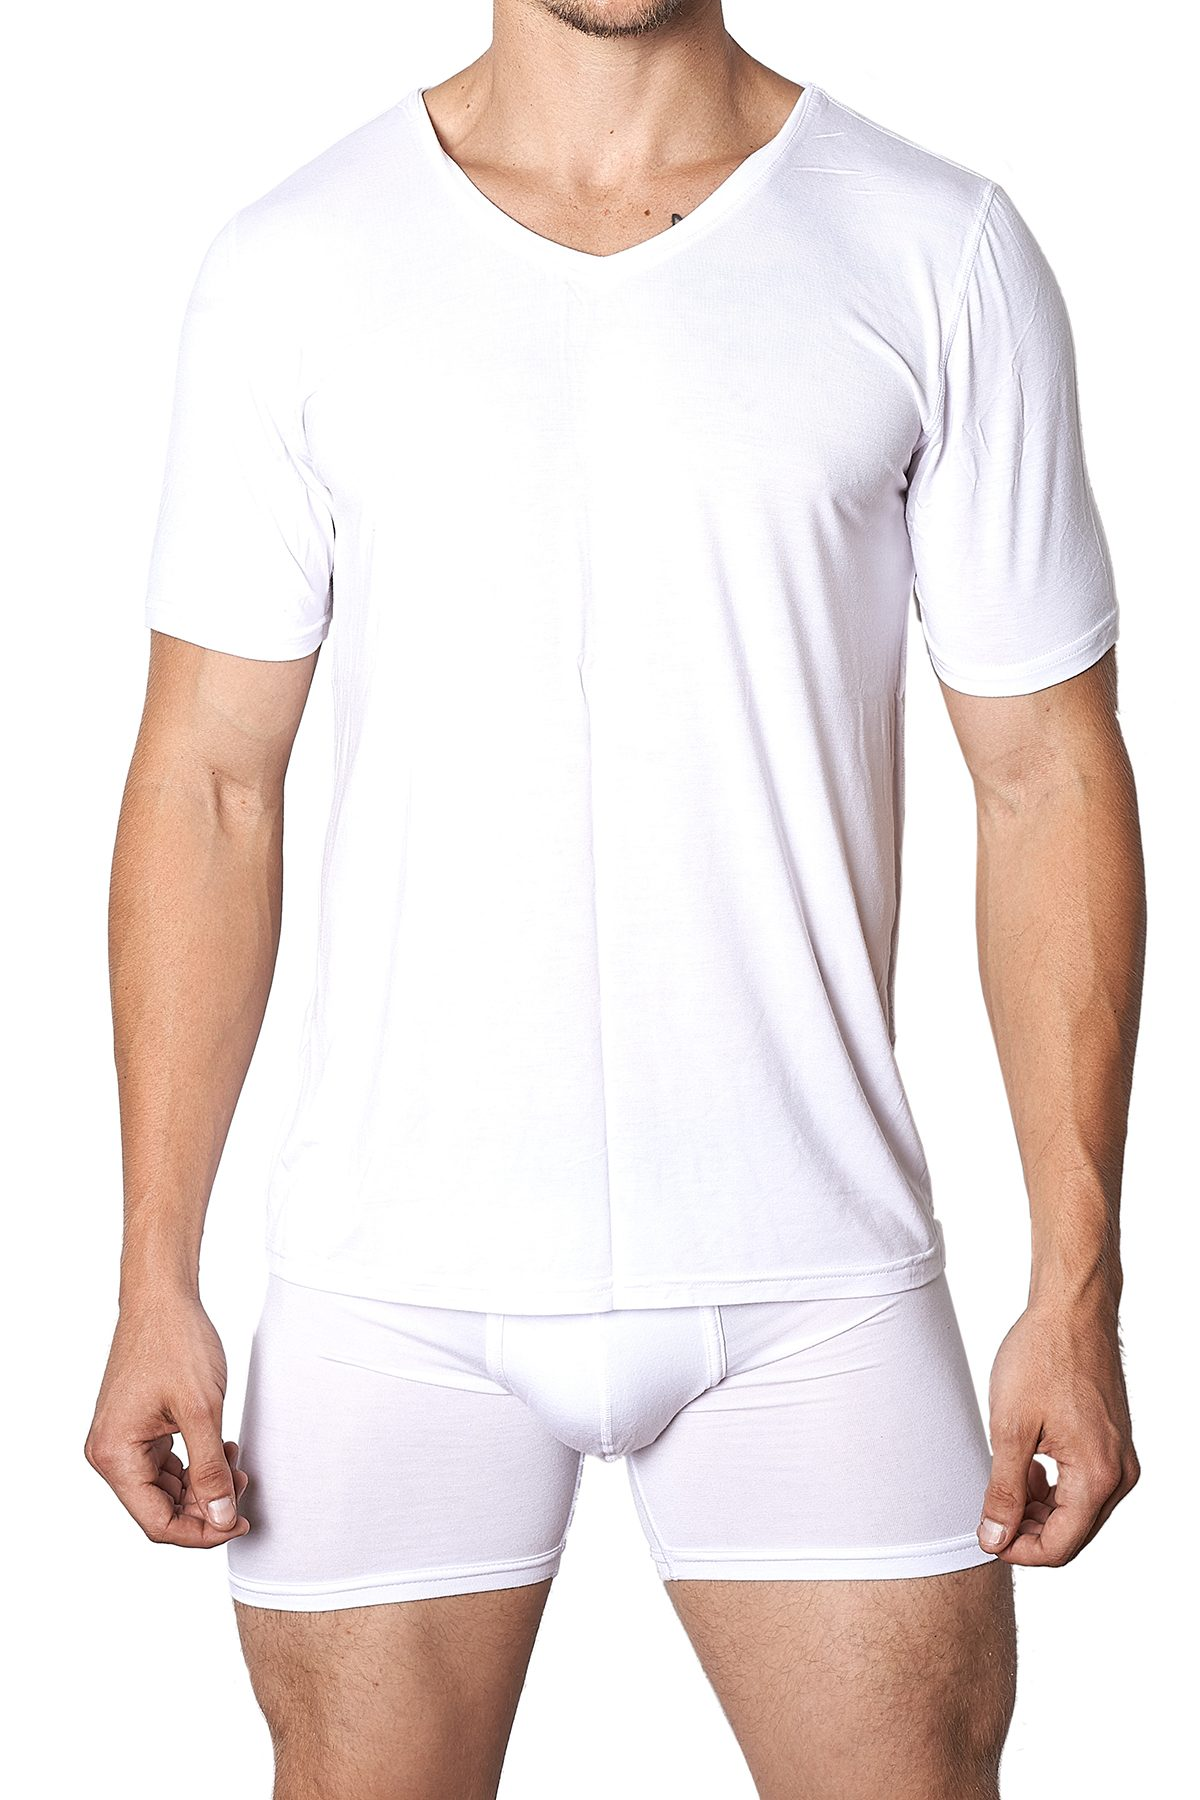 Yocisco's White Essentials V-Neck Shirt